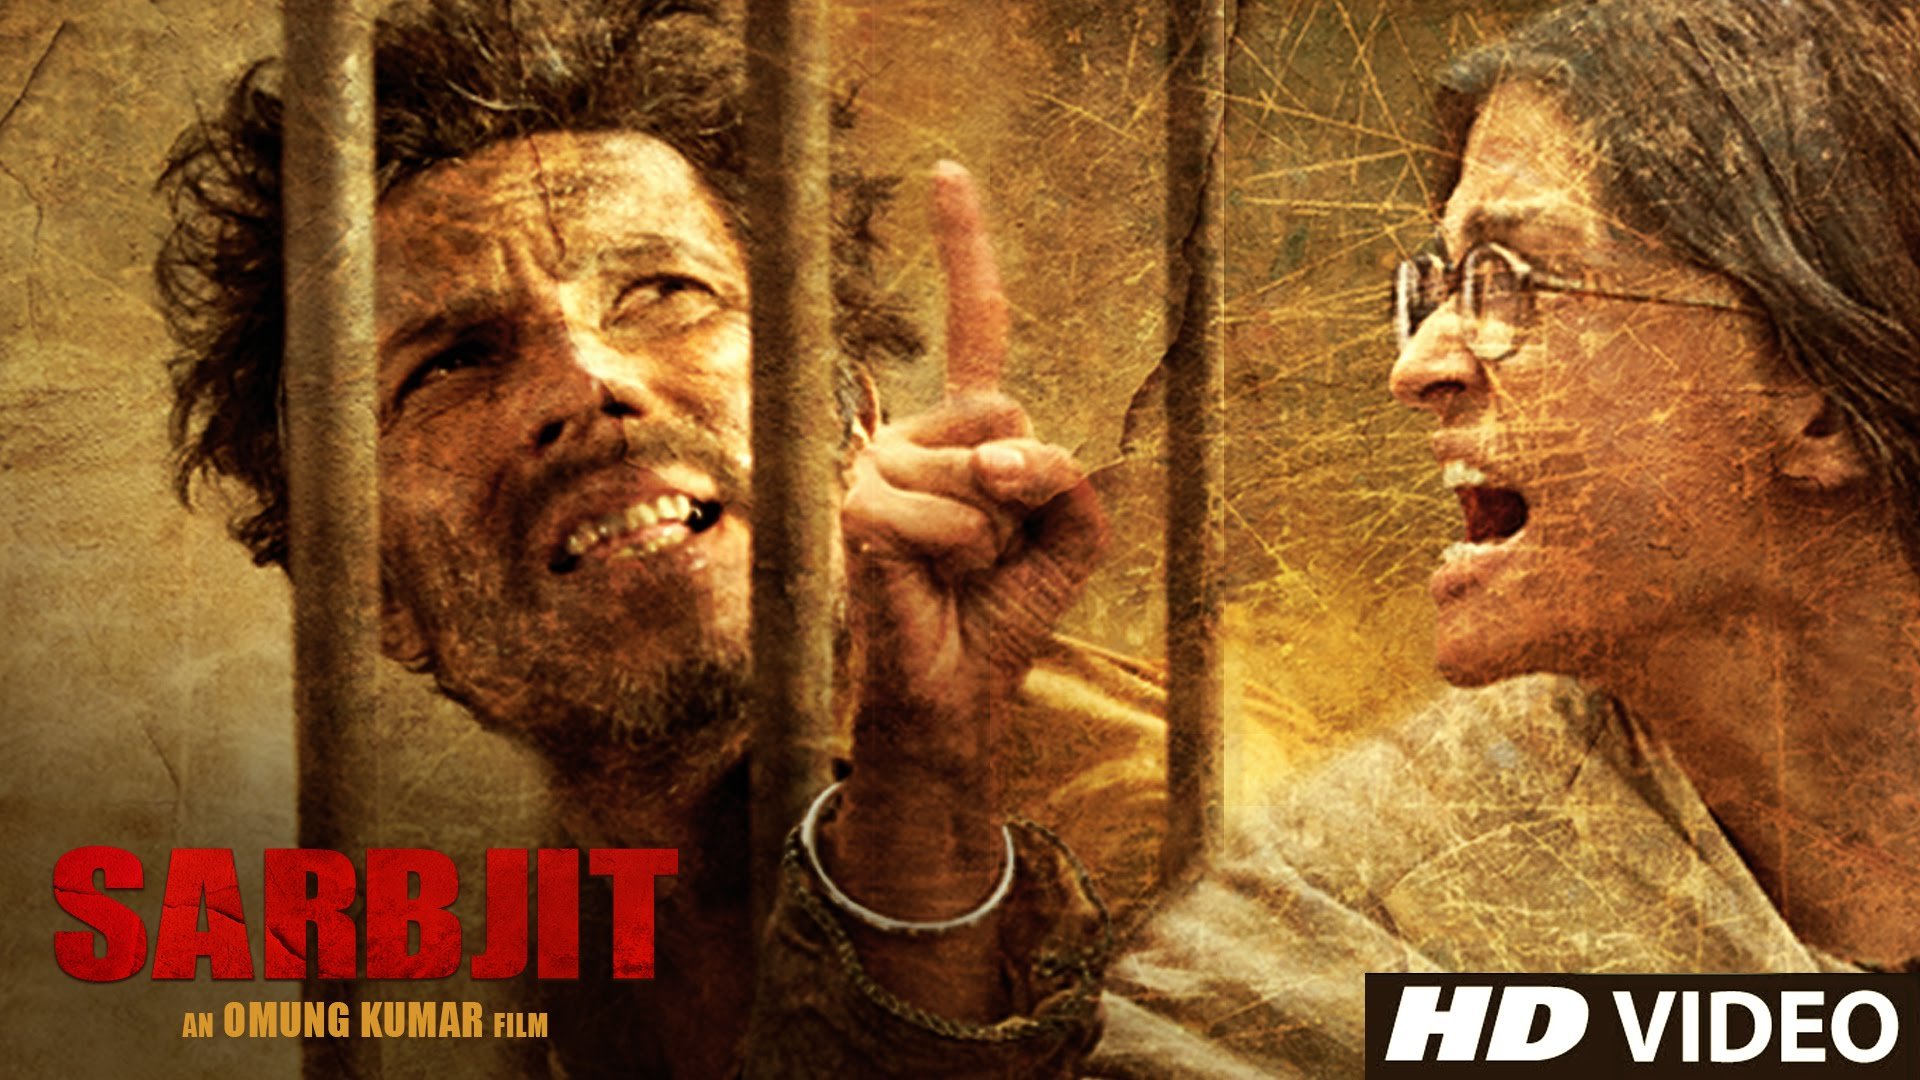 Sarbjit Trailer Review | Aishwarya-Randeep make a heart-wrenching tale come alive!